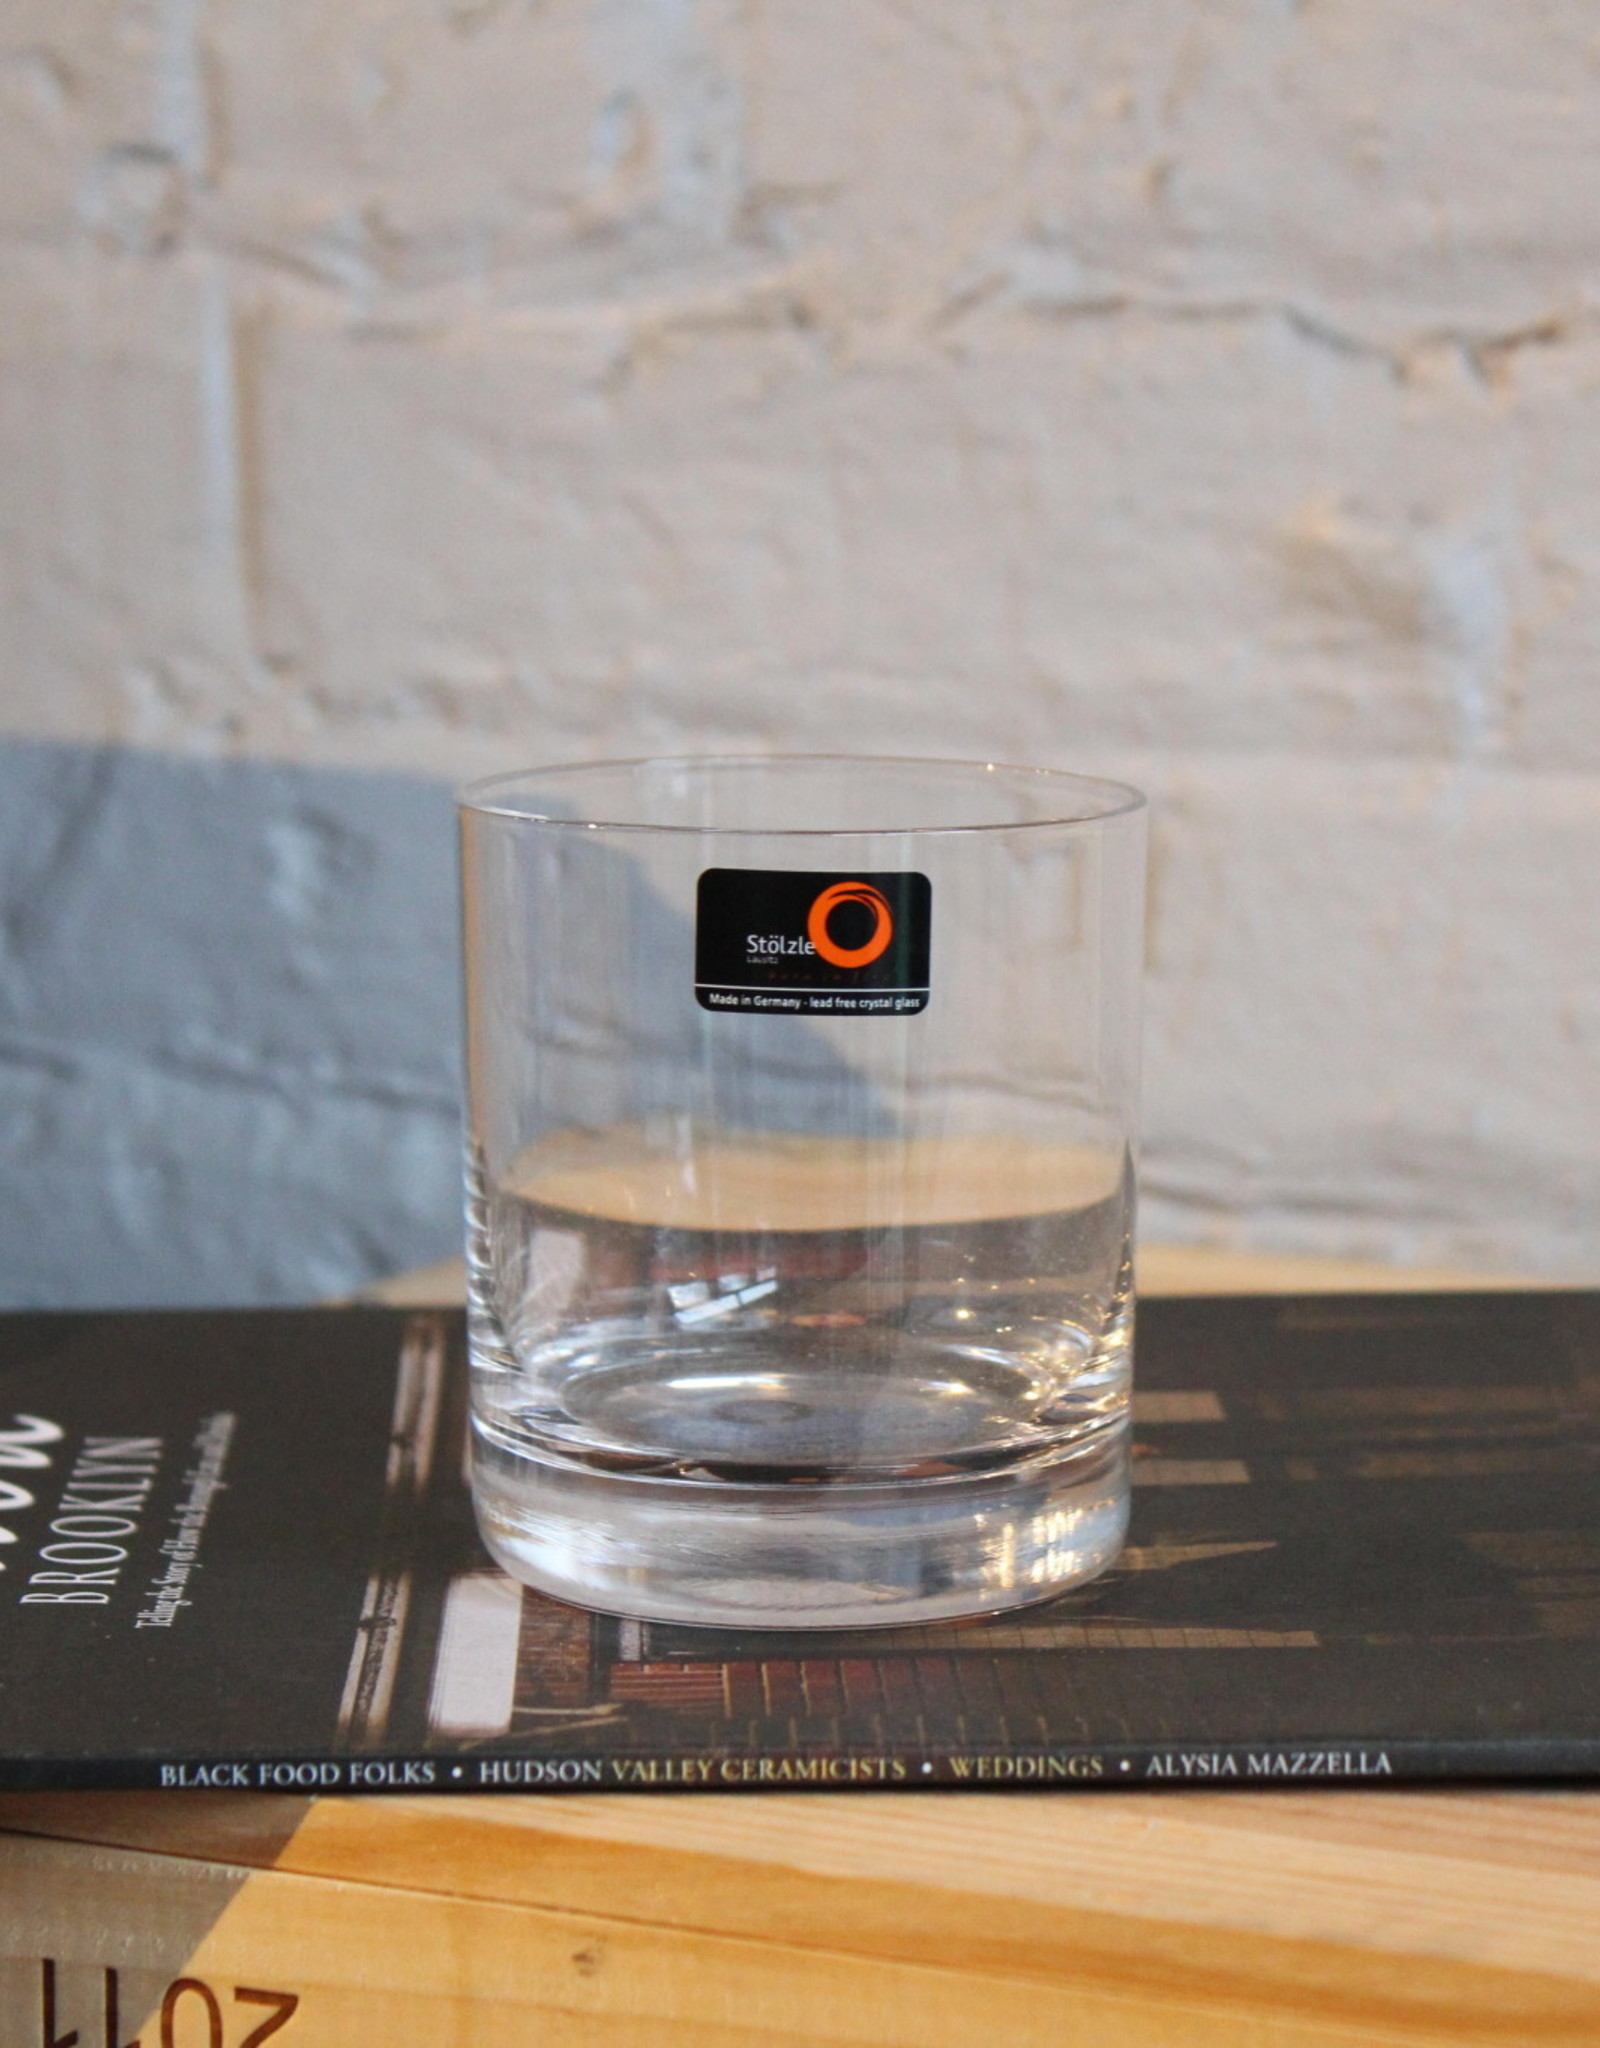 Stolzle New York 8.75 oz. Rocks / Old Fashioned Glass (6 pack)